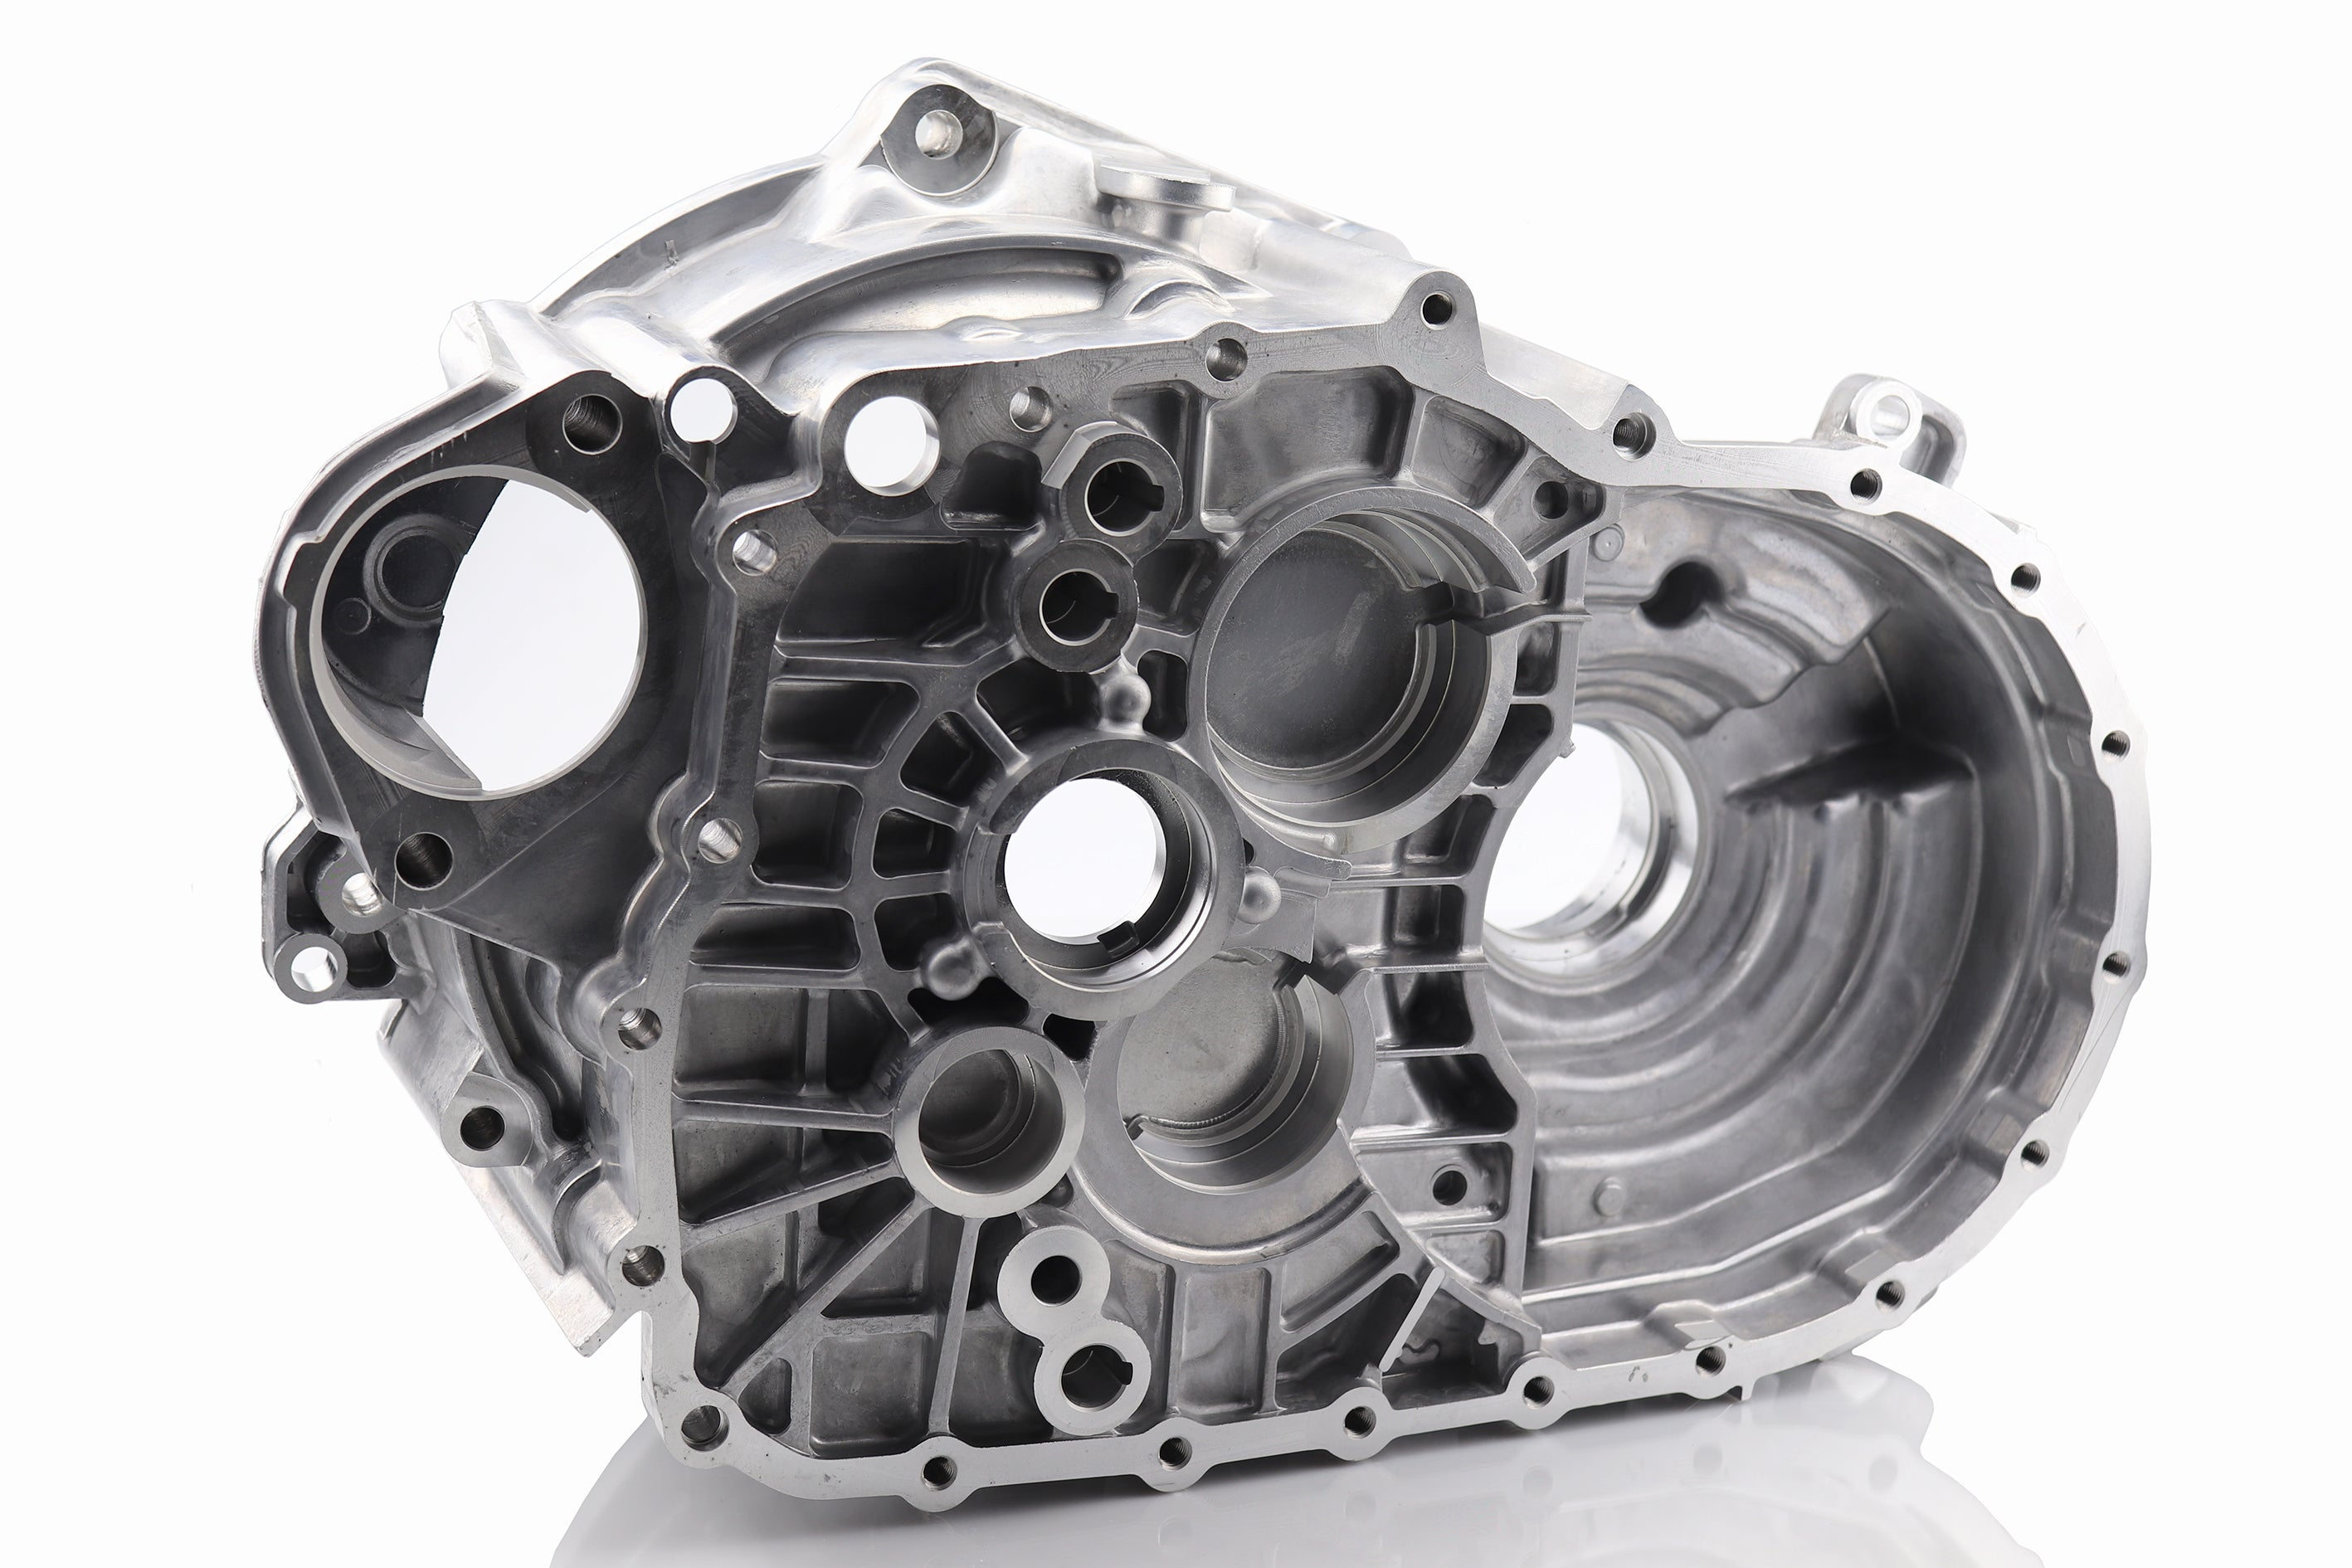 VW 02M 02Q 6 Speed manual gearbox clutch bell housing transmission